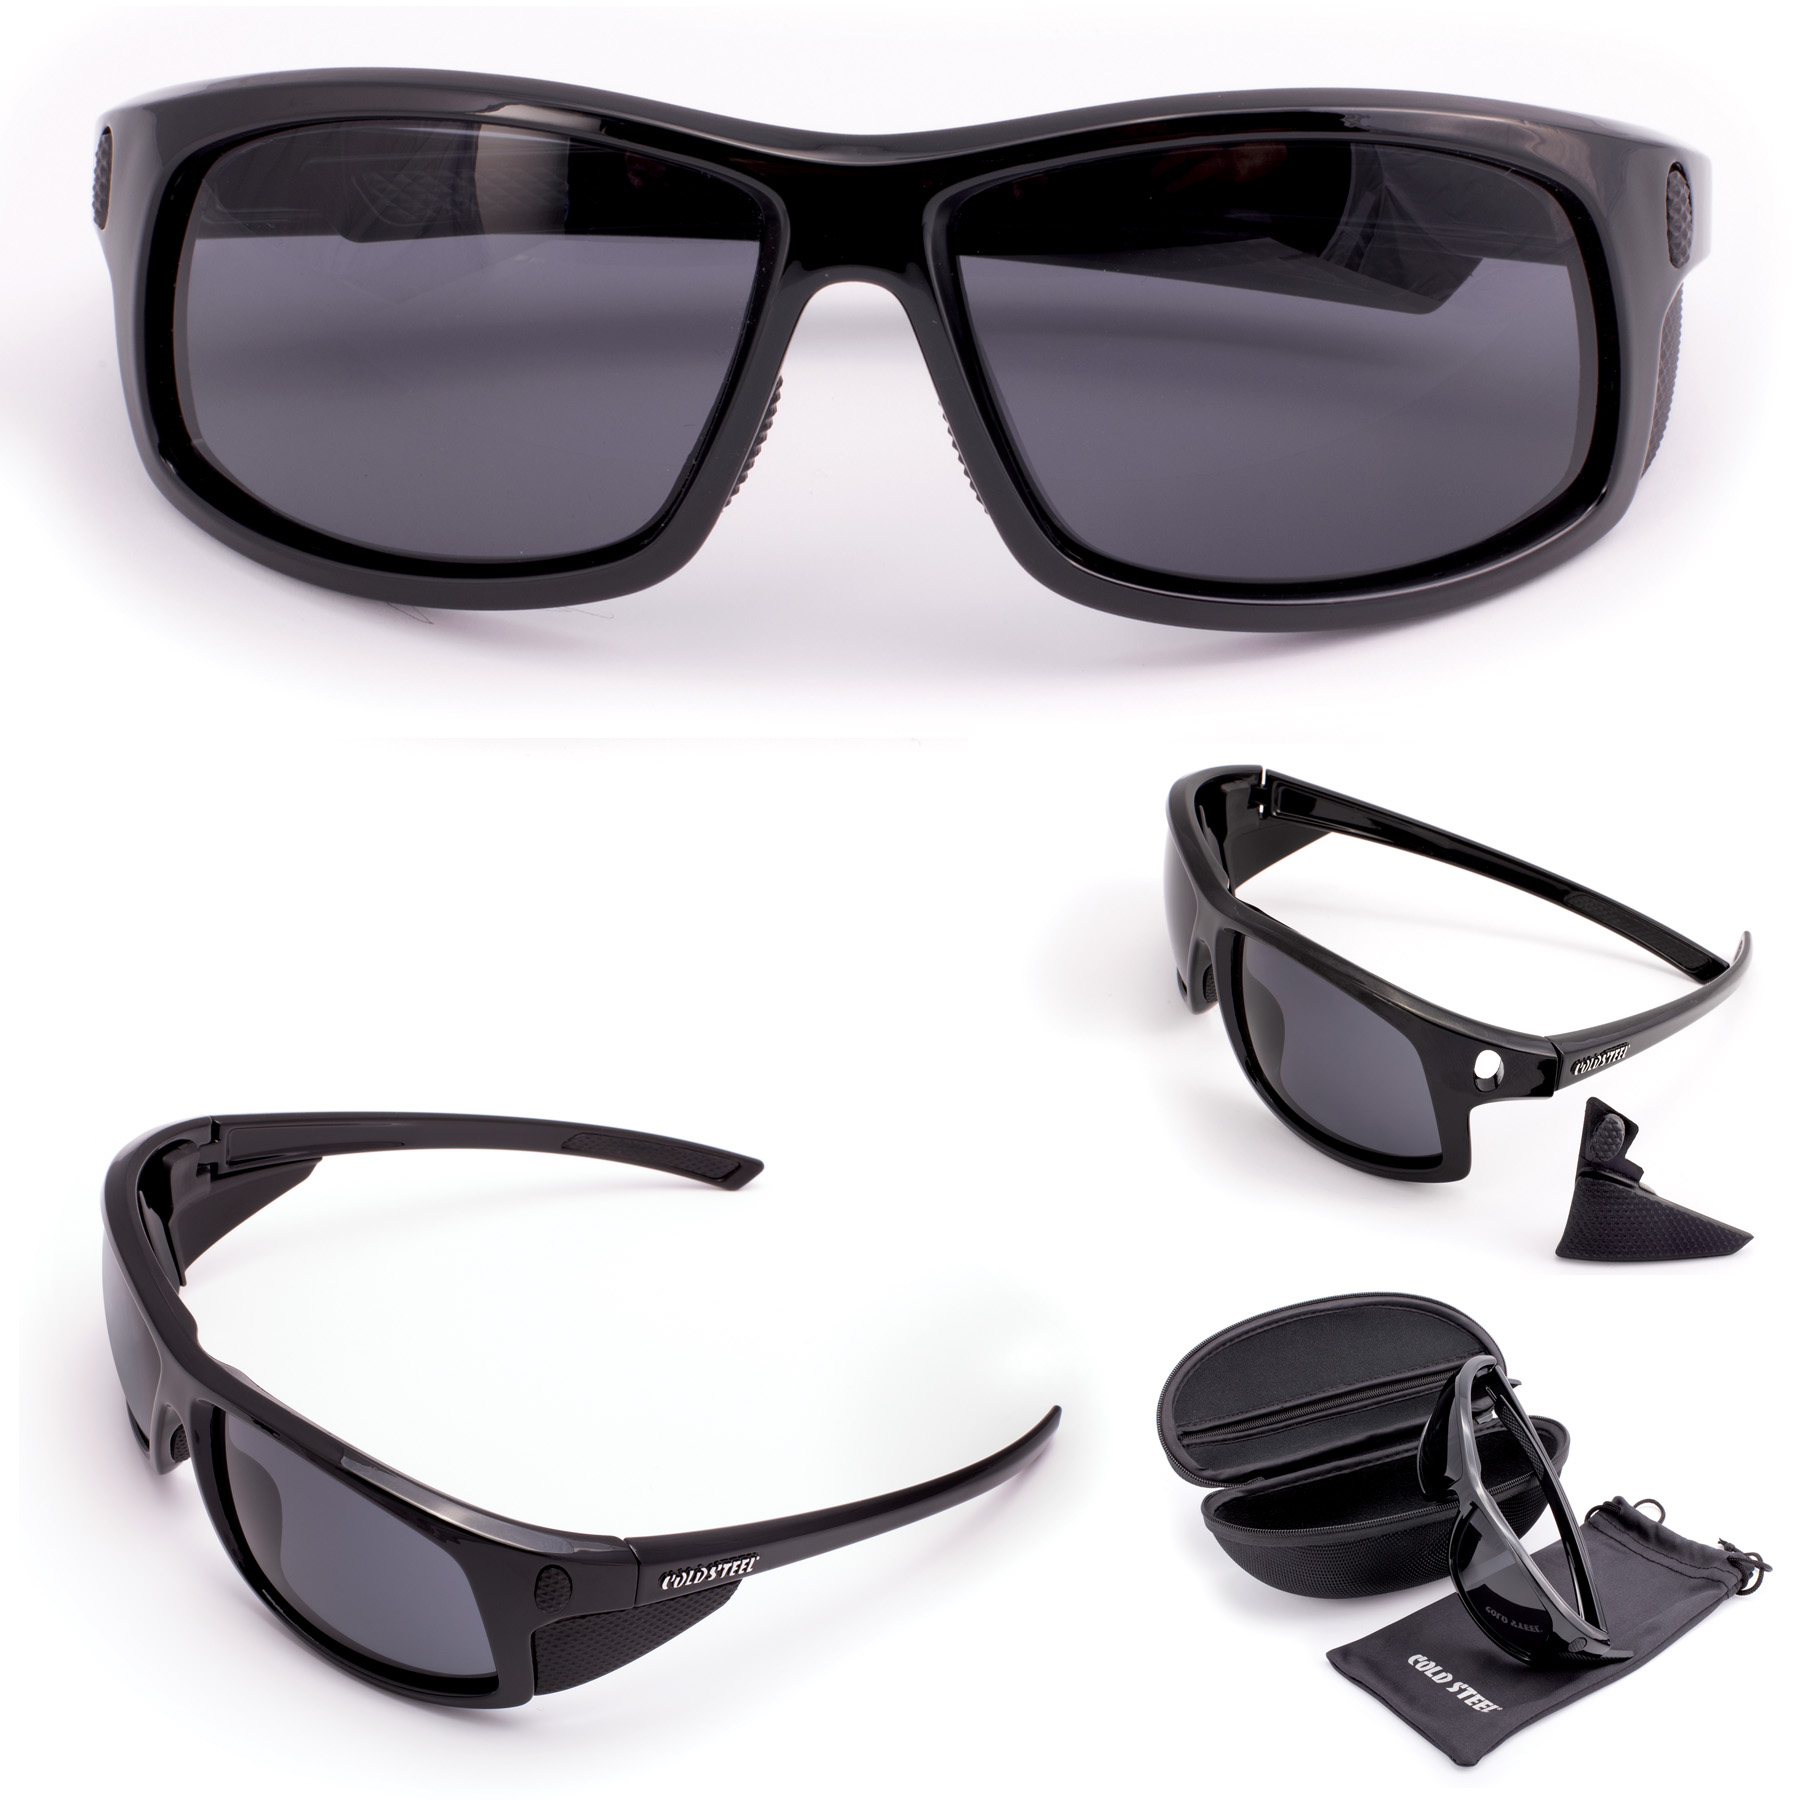 EW11 - COLD STEEL Battle Shades Mark I (Gloss Black)